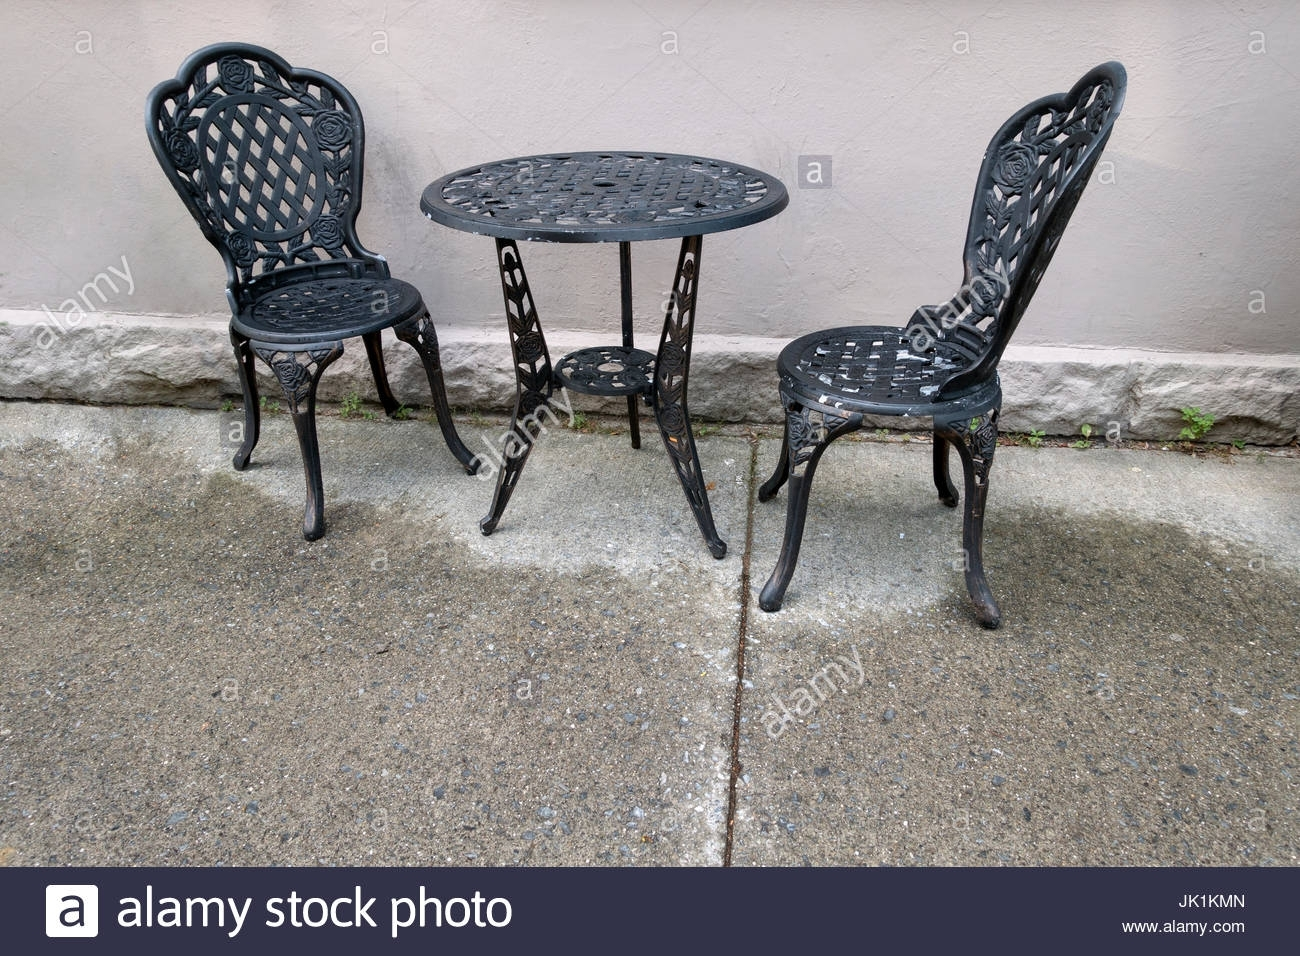 Cast Iron Chairs Stock Photos & Cast Iron Chairs Stock Images – Alamy Throughout Most Up To Date Chapleau Side Chairs (View 3 of 20)